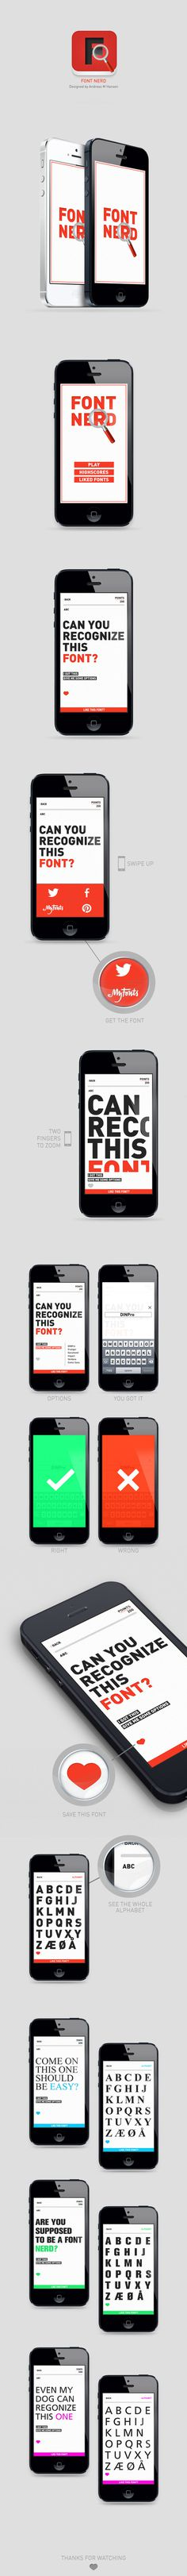 Font Nerd on Behance #font #design